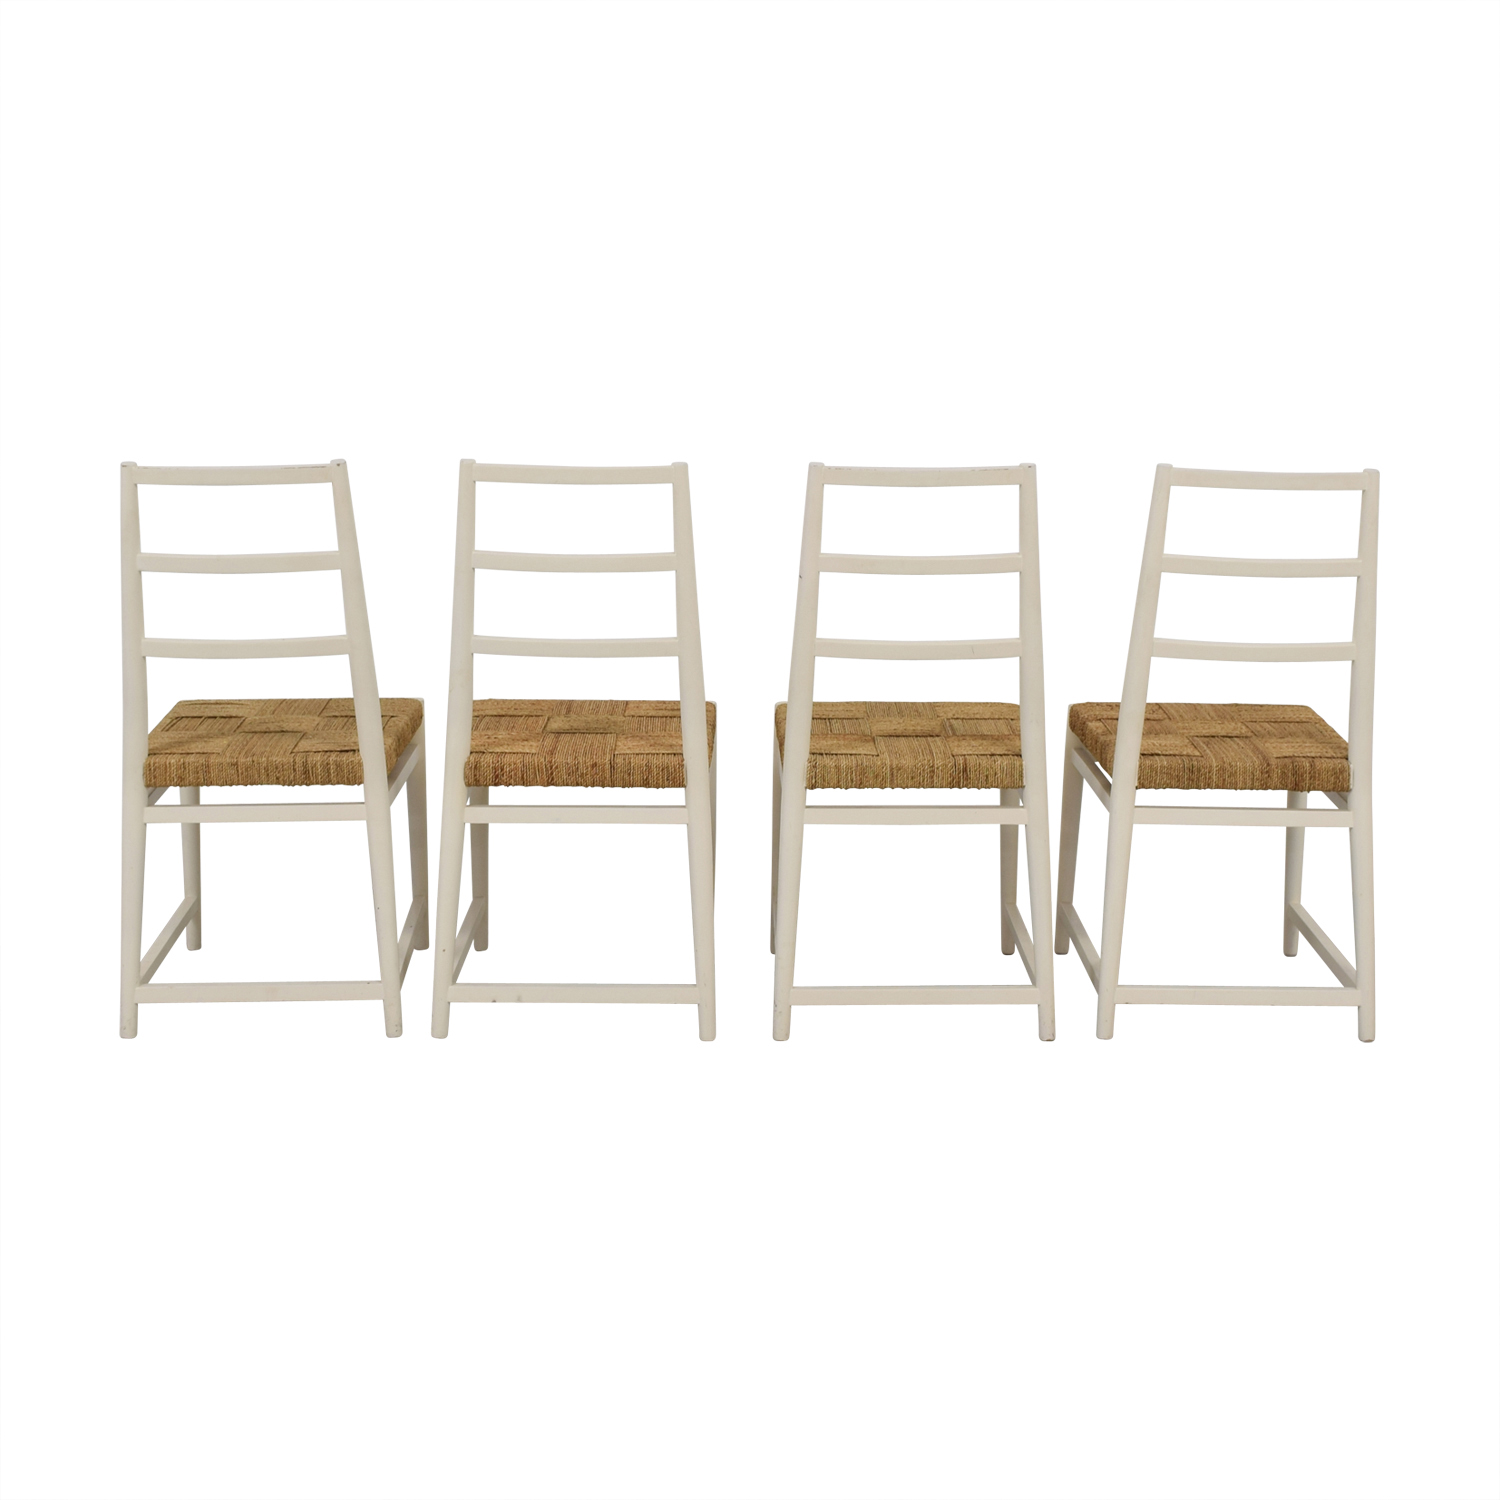 West Elm West Elm Painted White and Wicker Chairs for sale